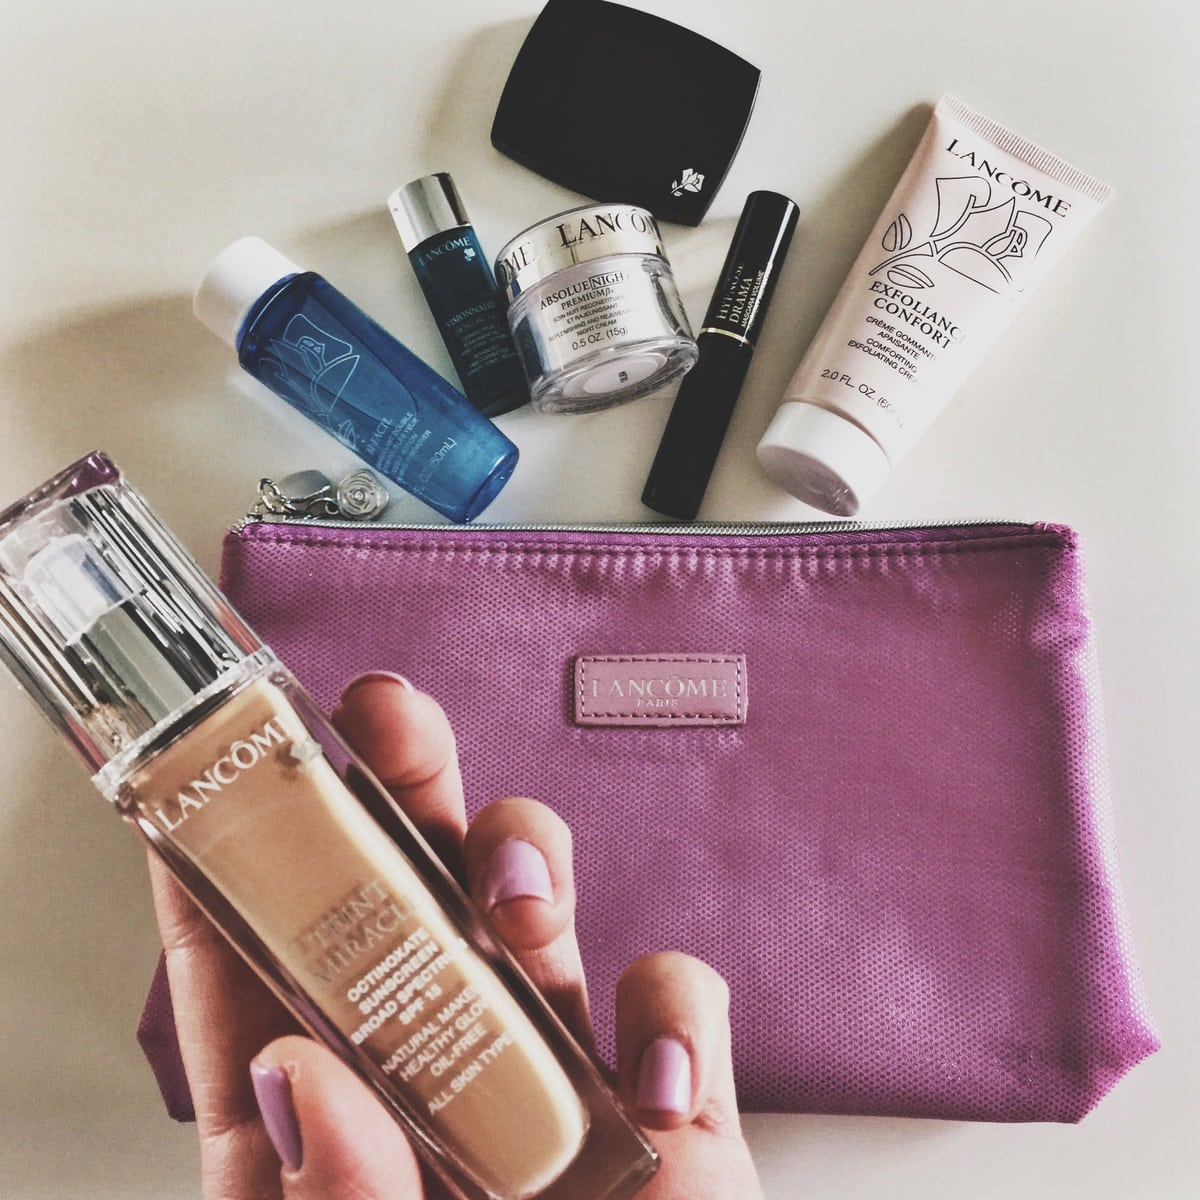 lancome free gift with $39.50 purchase AND triple points! - Mint Arrow